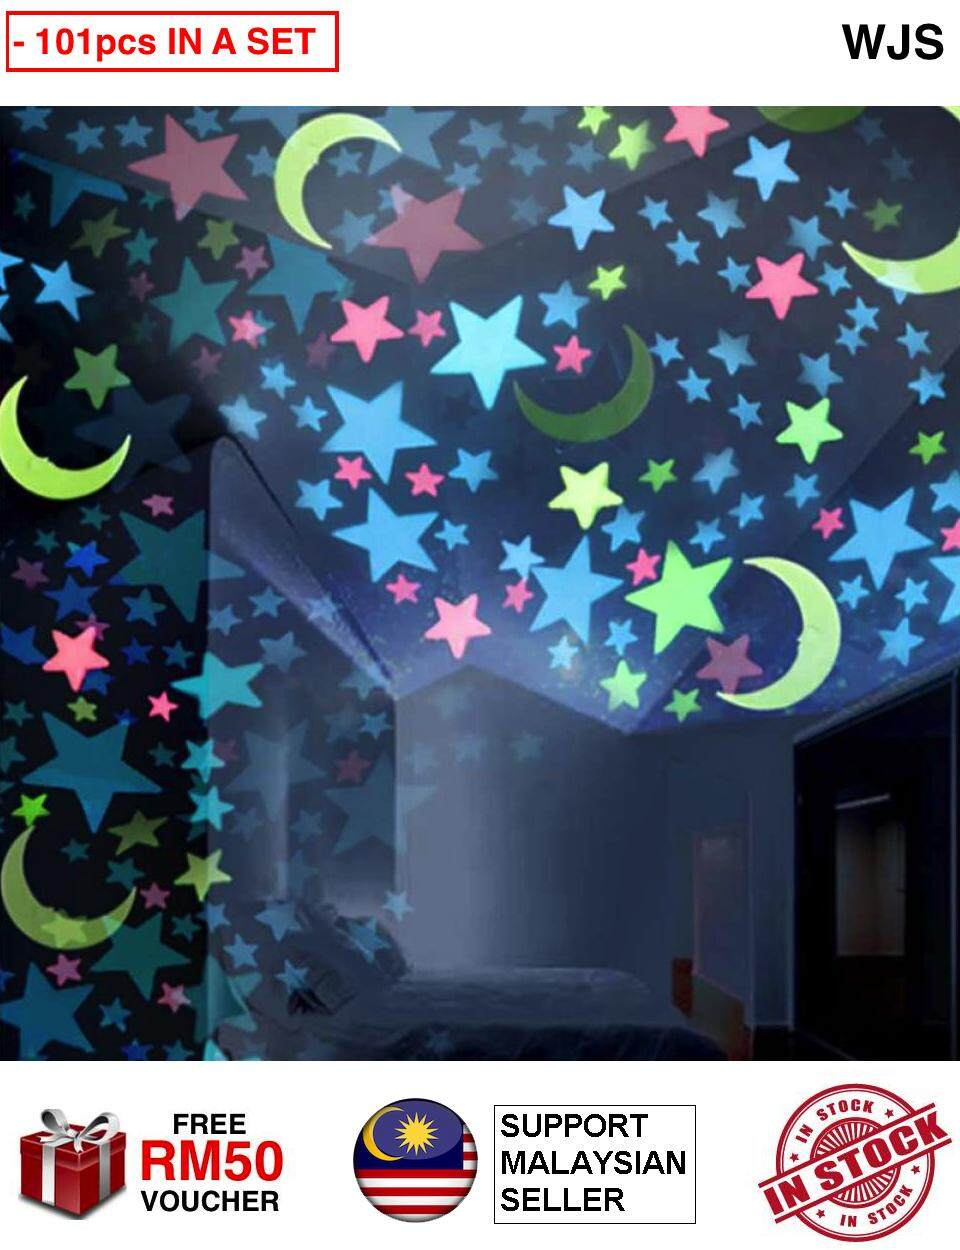 (101pcs IN A SET) WJS Glow in the Dark 100pcs Stars + 1pcs Moon Star Plastic Stickers Baby Toddler Kids Ceiling Bedroom Wall Glow in the Dark Stars Sky NEON GREEN PINK YELLOW WHITE MULTICOLOR (FREE RM 50 VOUCHER)